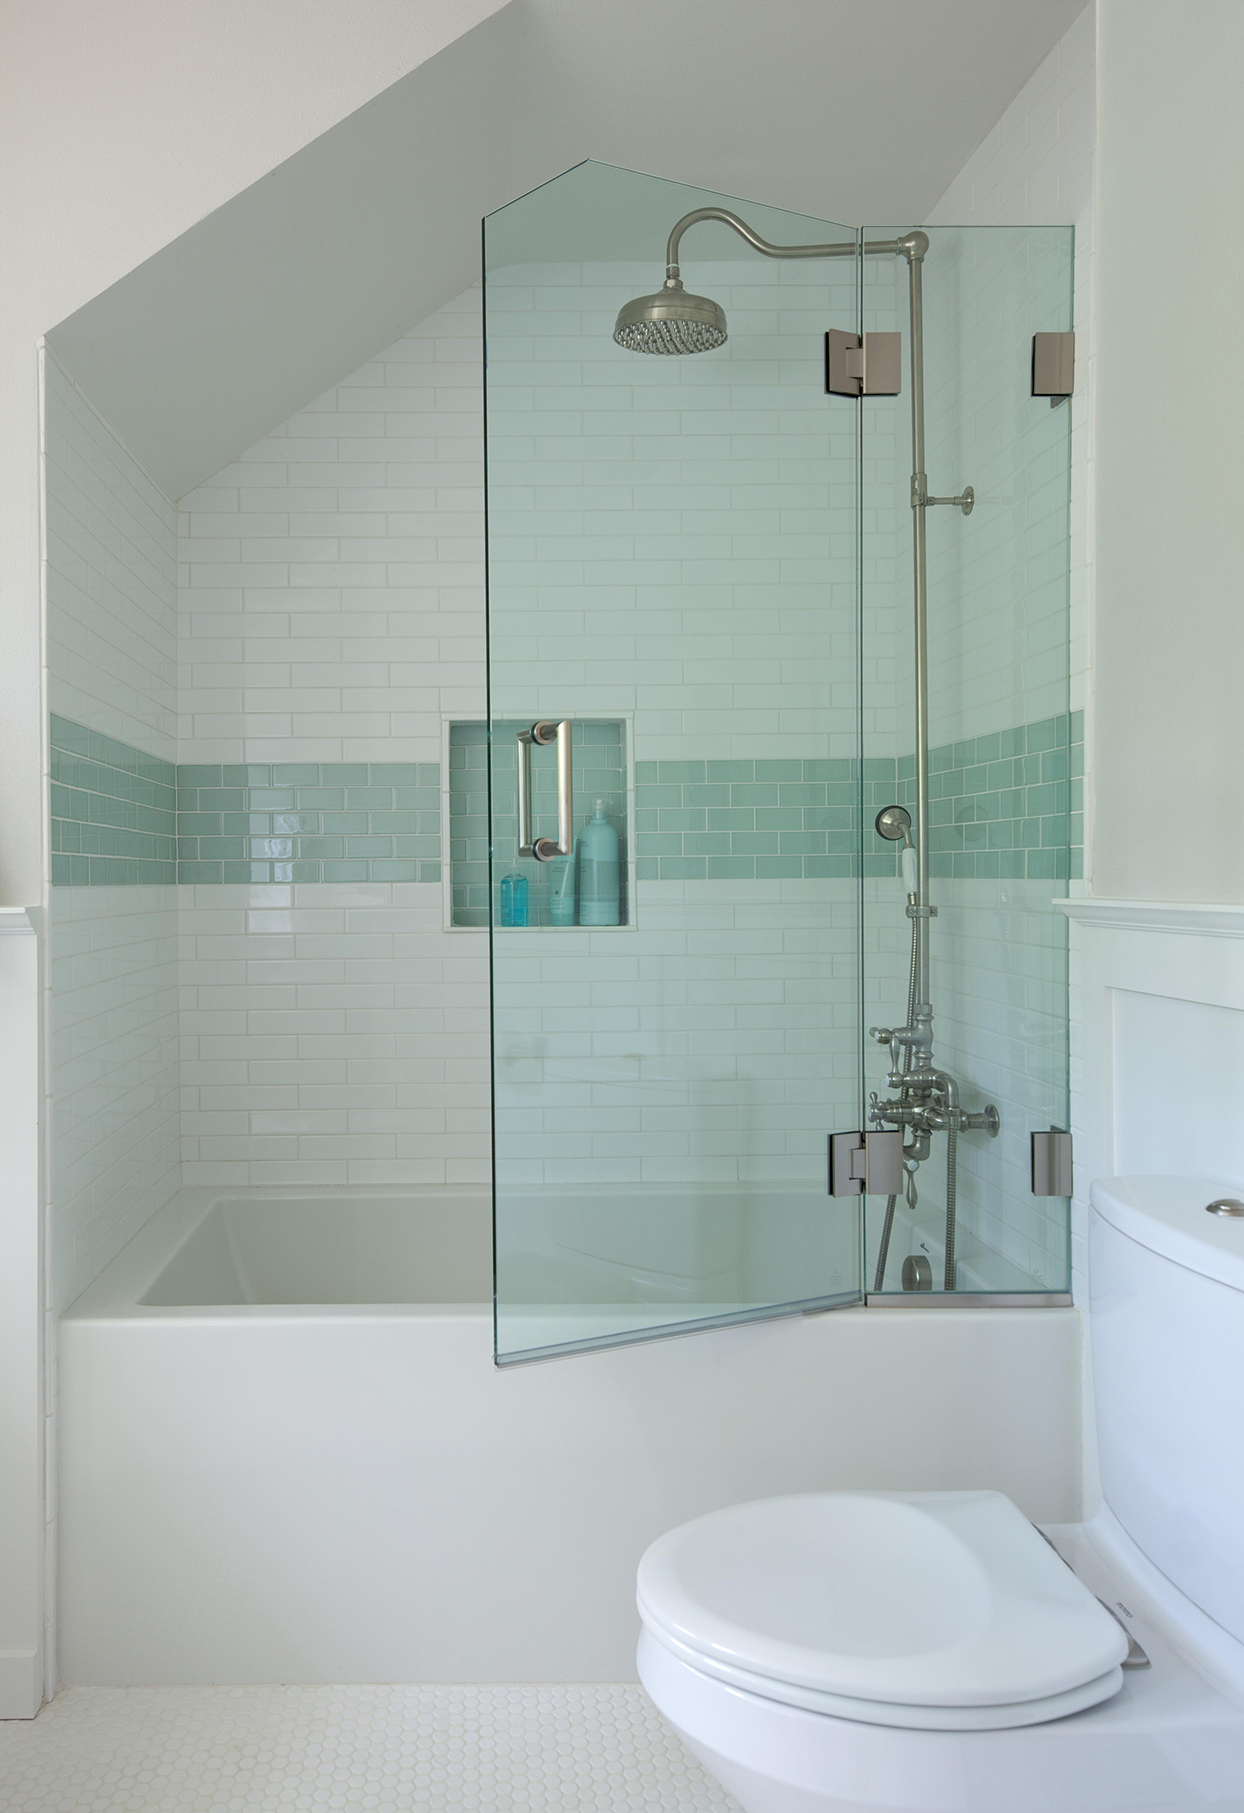 white bathroom with tiled shower and angled glass door